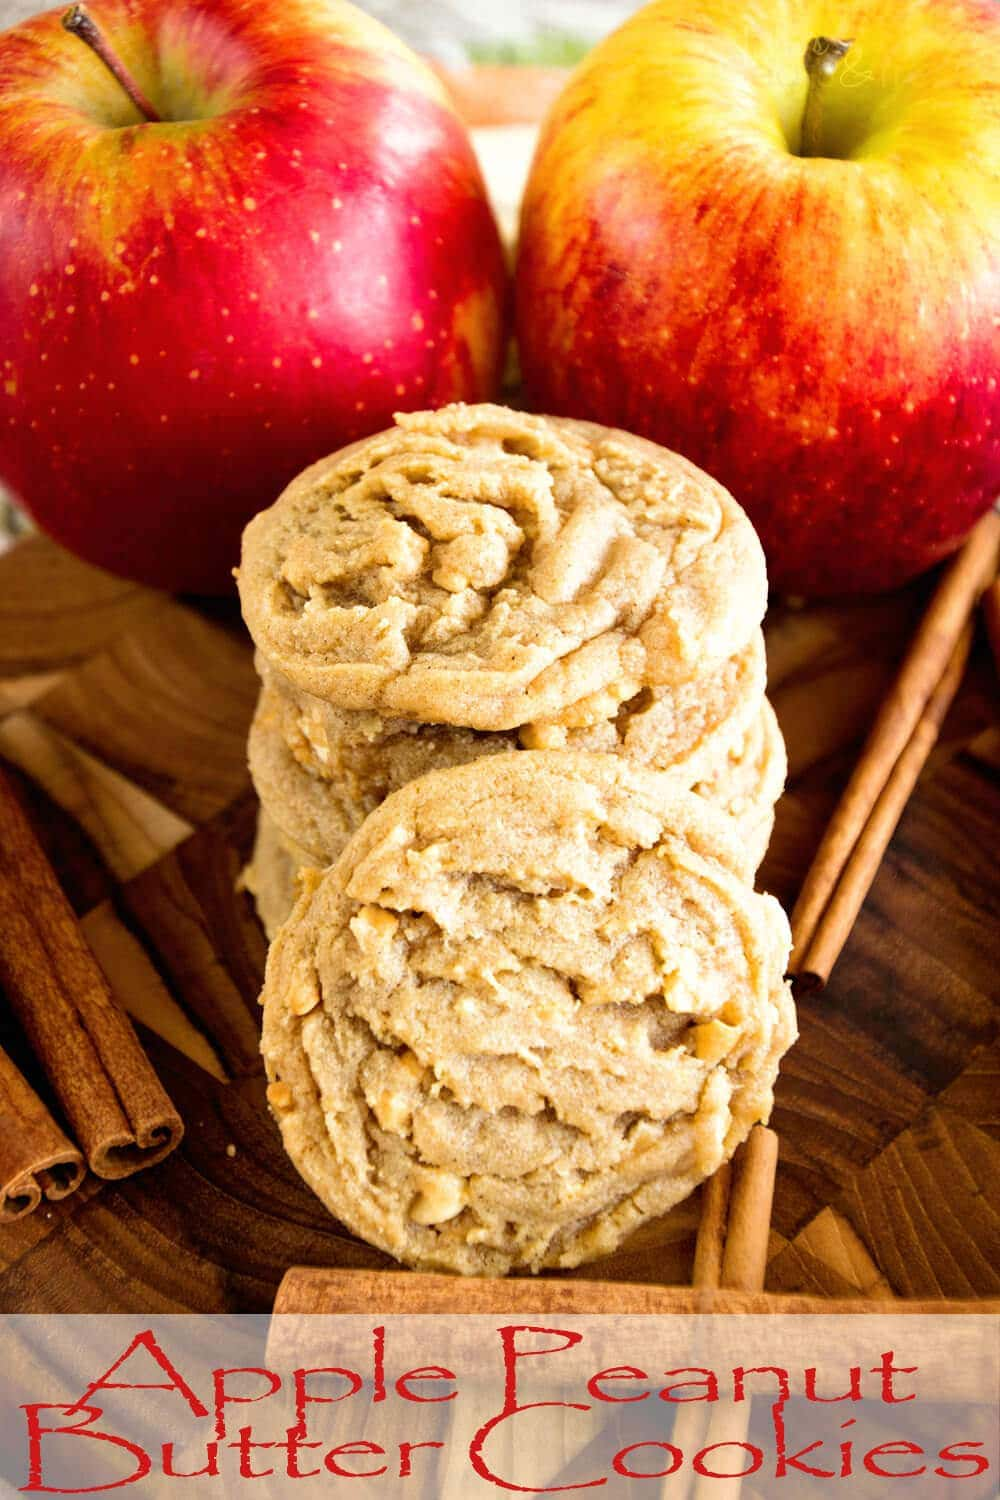 Apple Peanut Butter Cookies ~ Delicious, Soft, Chewy Cookie Recipe Loaded with Peanut Butter, Cinnamon and Fresh Apples!